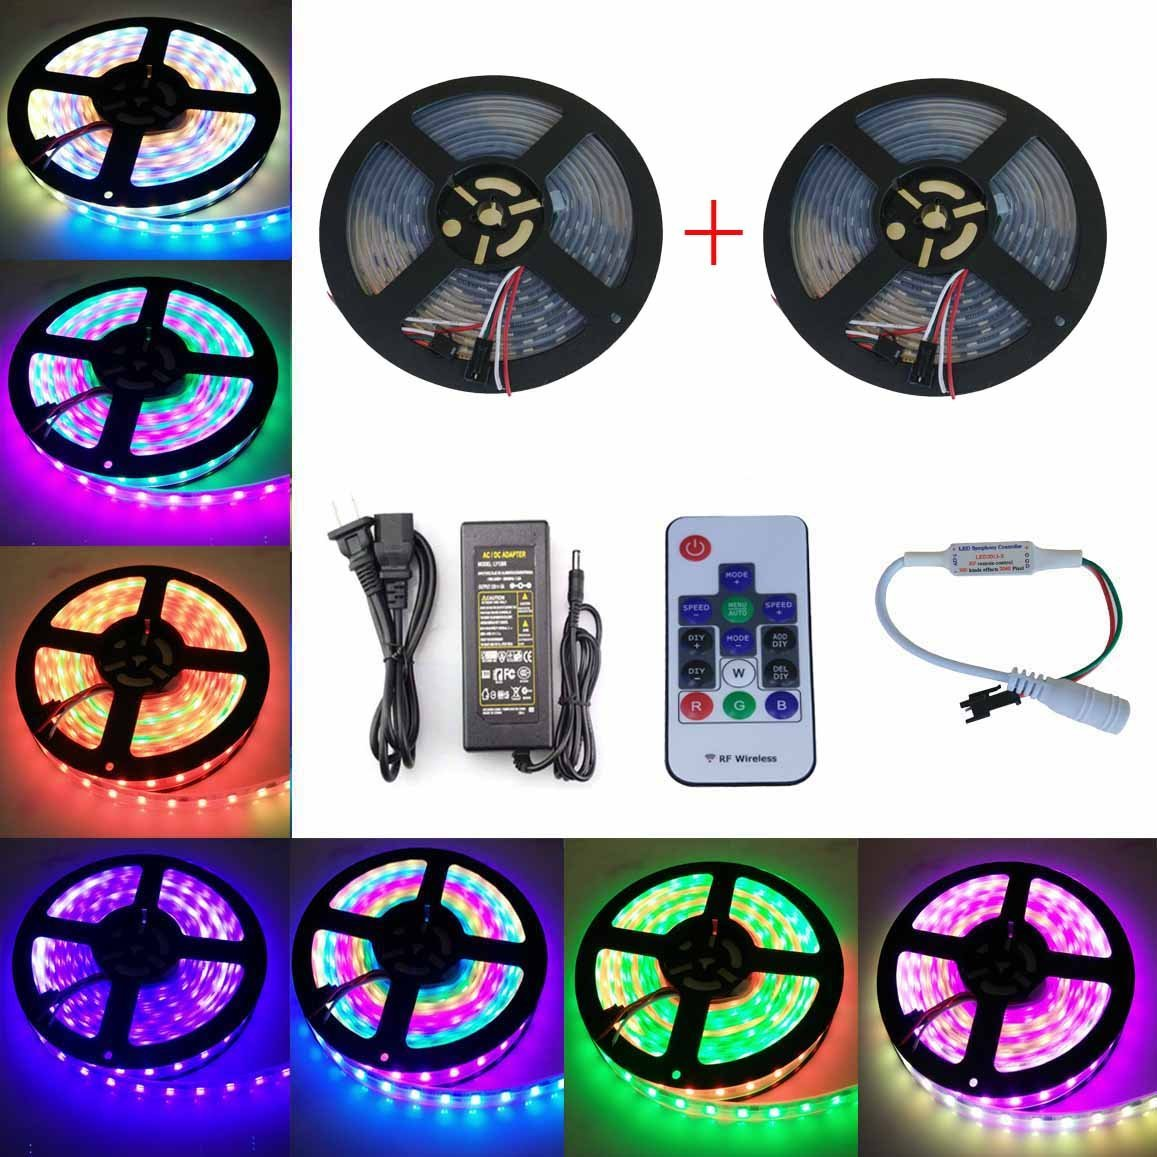 Toogod 33ft 300 Modes Magic Color RGB Strip Kit,WS2811 5050 Digital RGB Strip Light 30LED/m DC12V Led Strip,Club Bar Party Christmas Light,33ft+Controller+Power(2x 16.5ft IP67 waterproof kit)